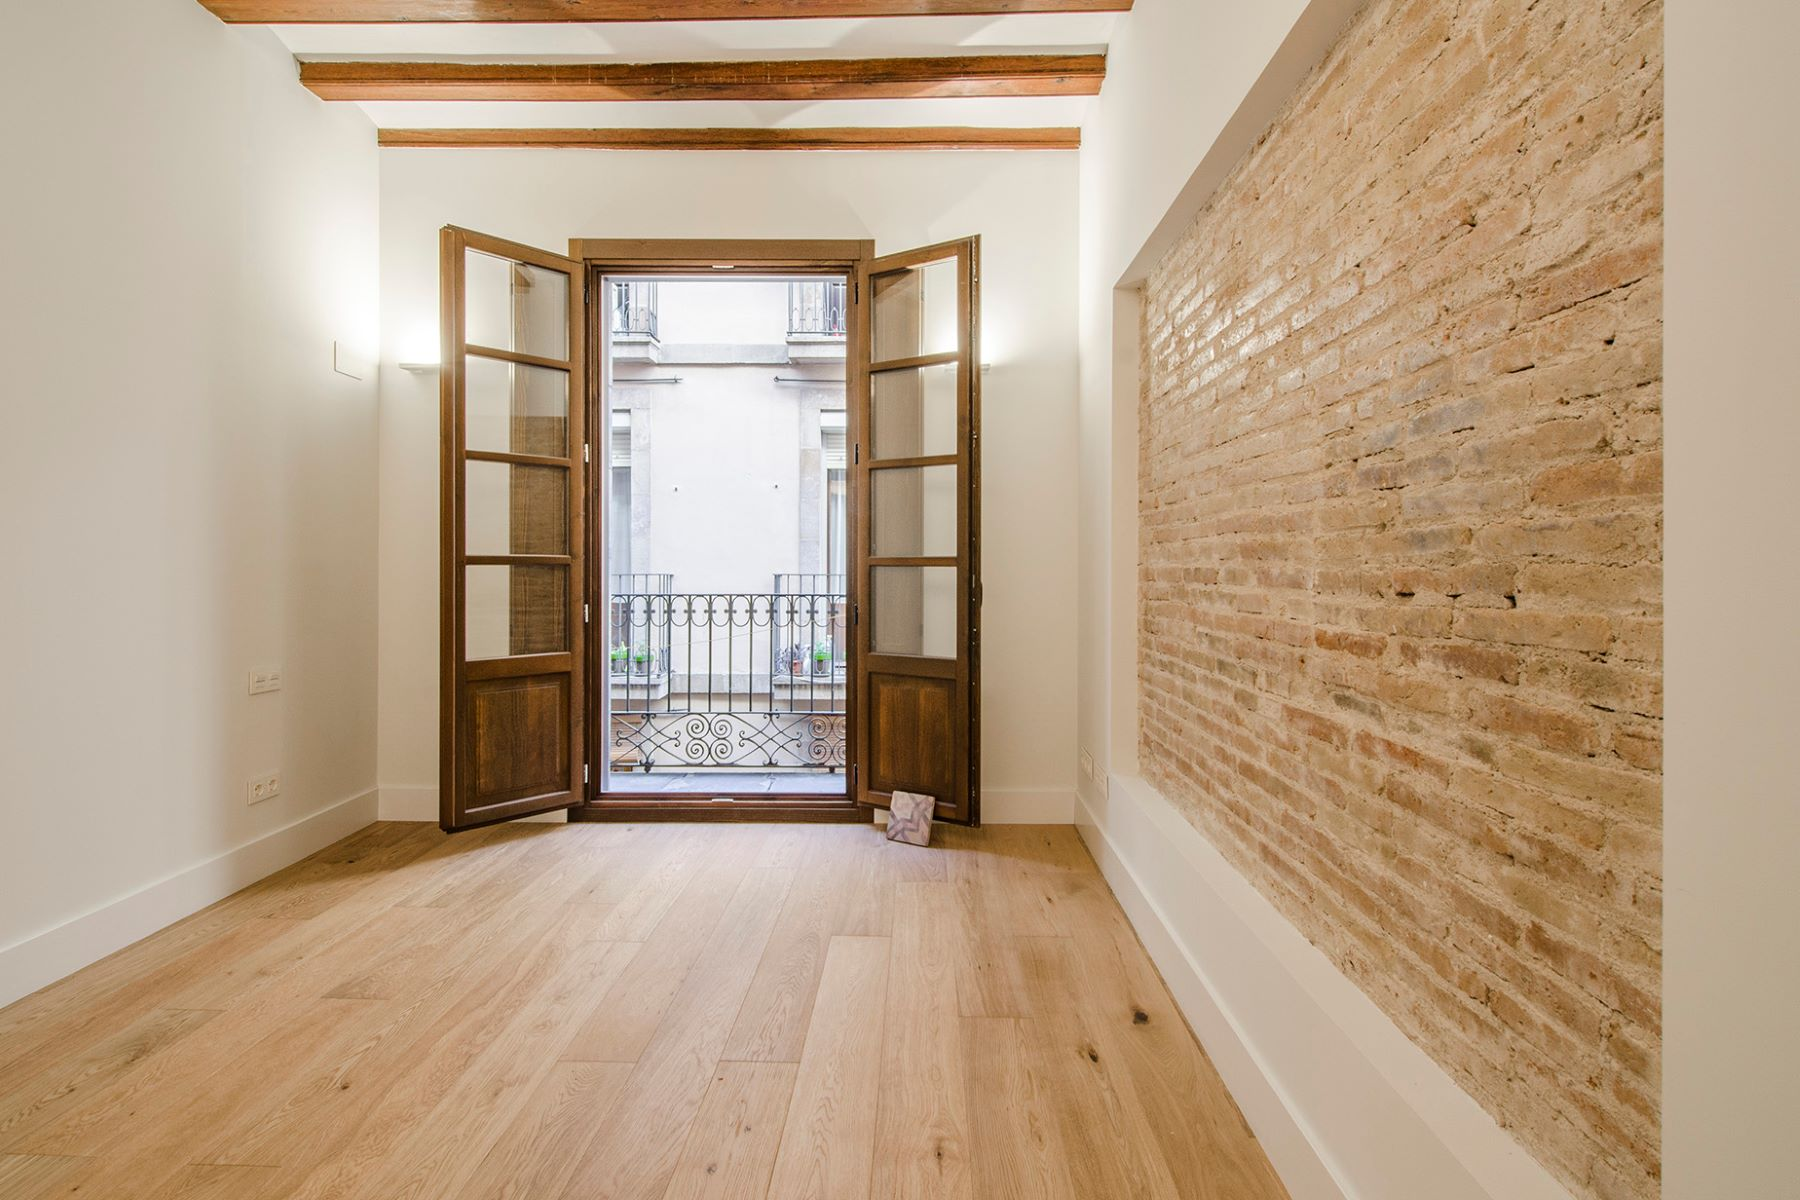 Căn hộ vì Bán tại Two Bedrooms Brand New Penthouse with exclusive terrace Barcelona City, Barcelona, 08002 Tây Ban Nha